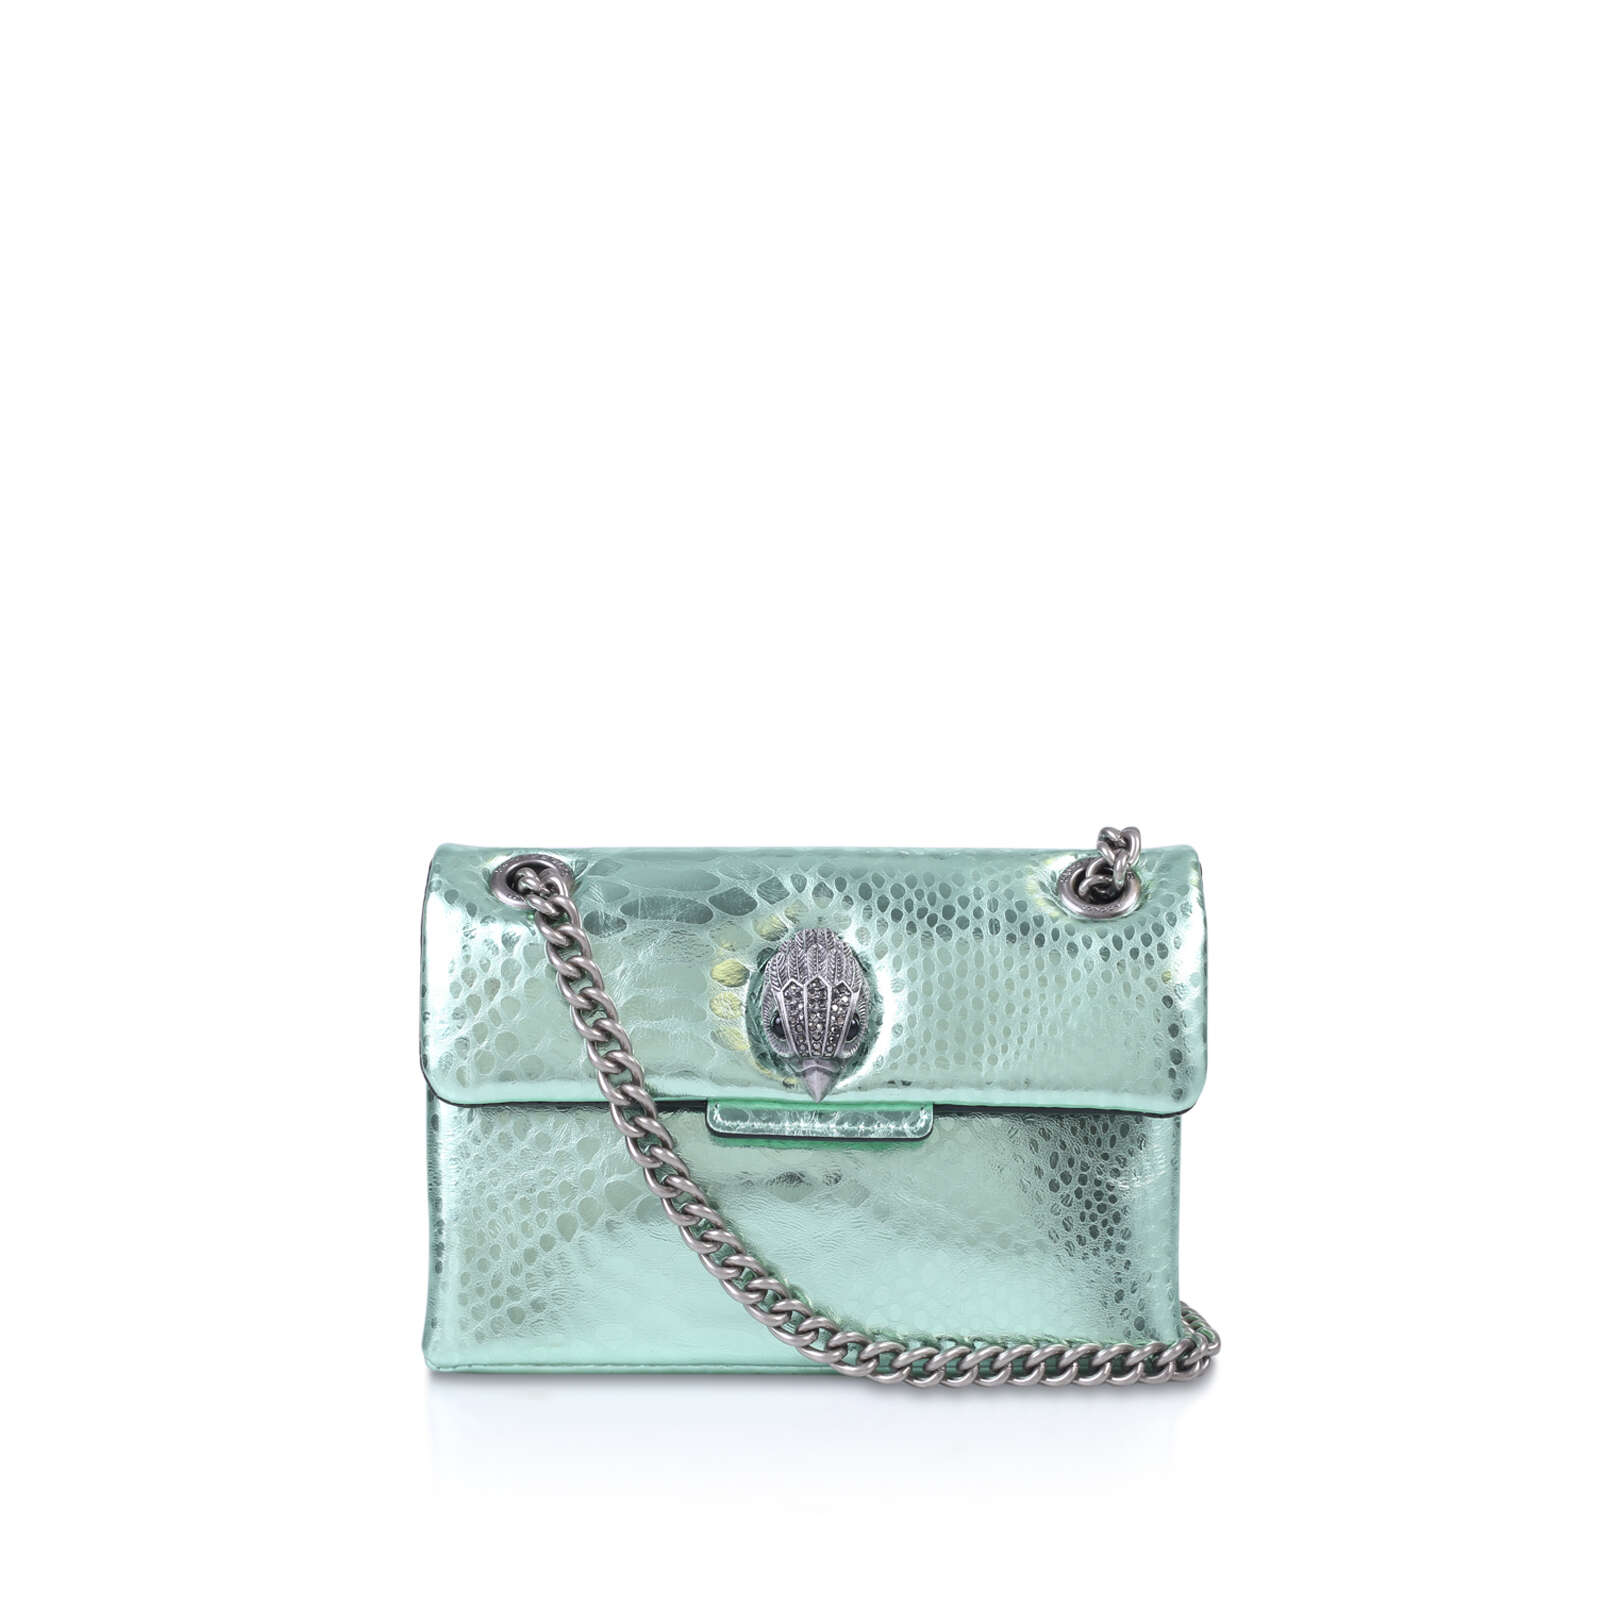 Mini Snake Kensington kurt geiger